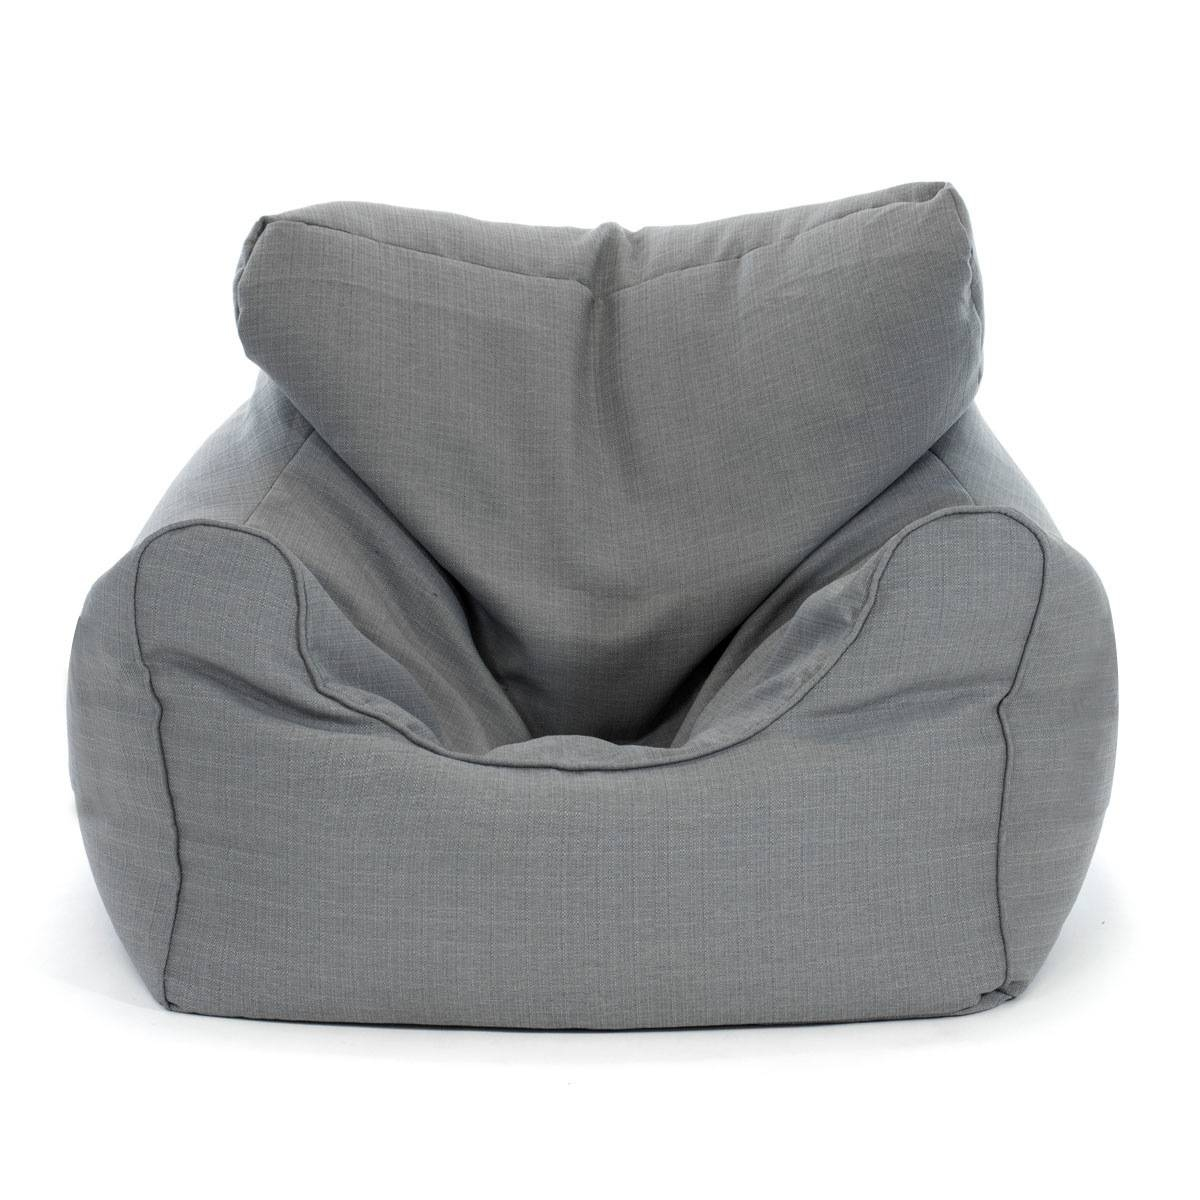 Large Luxury Bean Bag Cover Armchair Beanbag Sofa/chair Armrest with Bean Bag Sofa Chairs (Image 15 of 15)